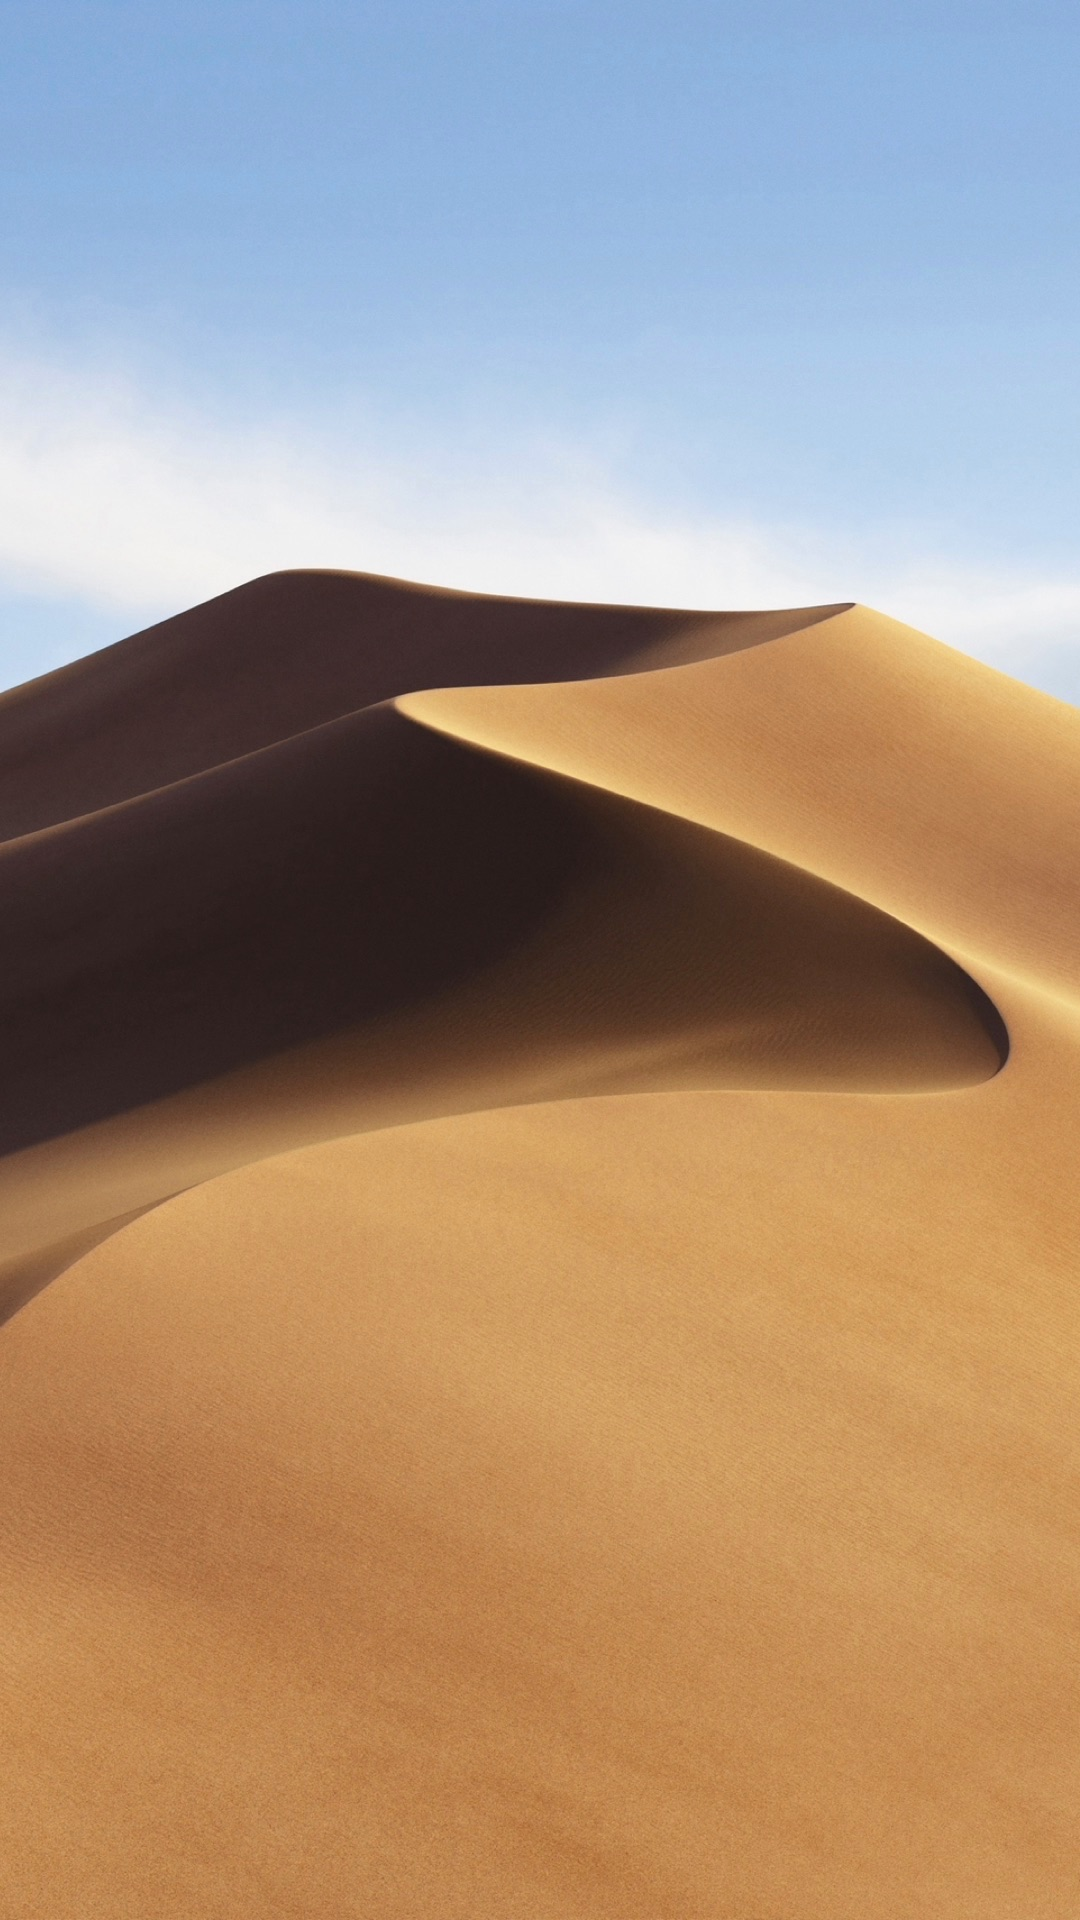 Download unsplash wallpapers for macos 10.12 or later and enjoy it on your mac. Wallpaper Weekends Macos Mojave Wallpapers For Iphone Ipad And Apple Watch